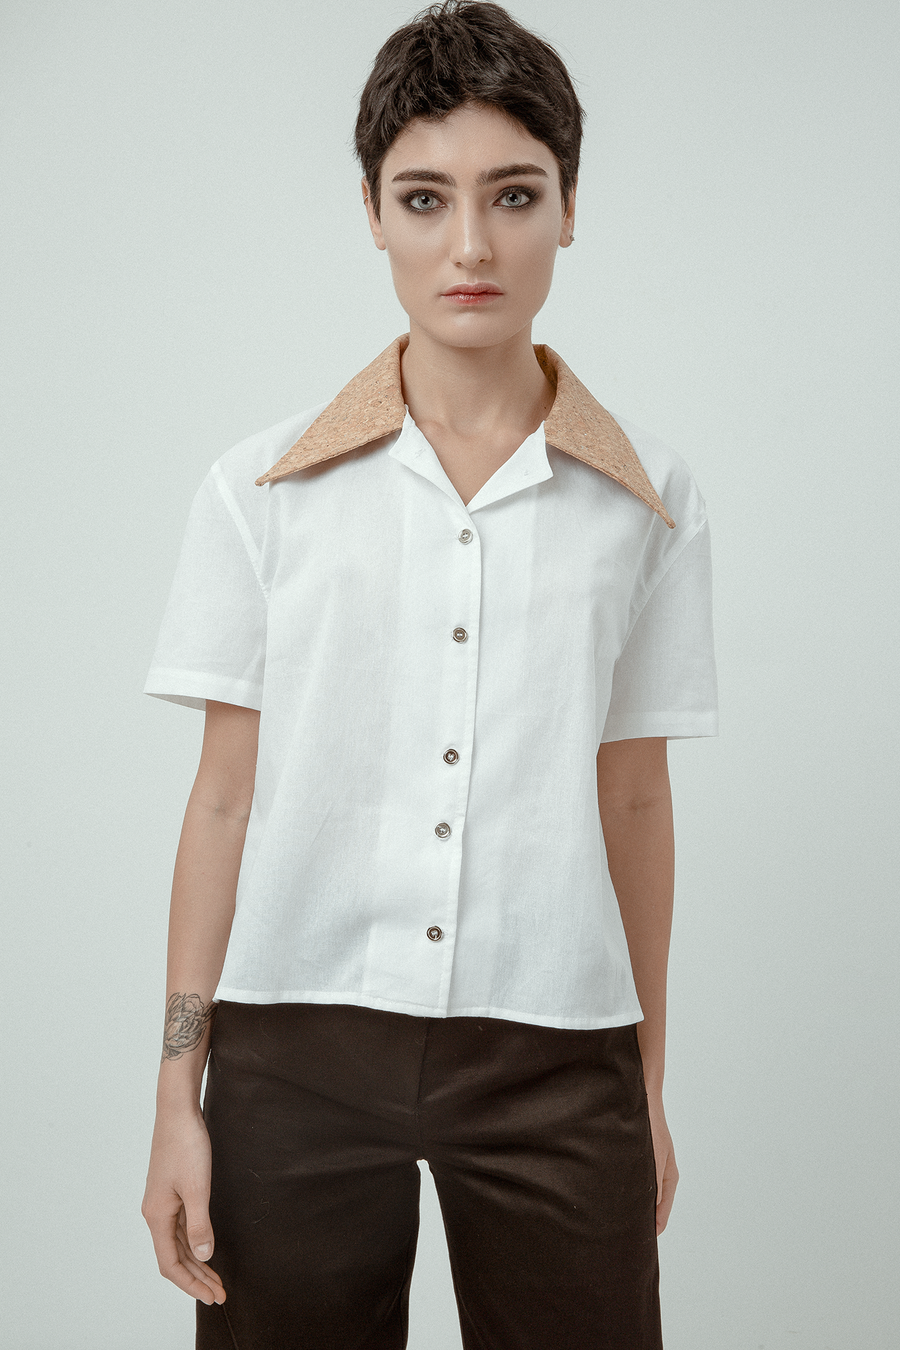 LOT 012 - WHITE SHORT SLEEVES SHIRT WITH CORK COLLAR